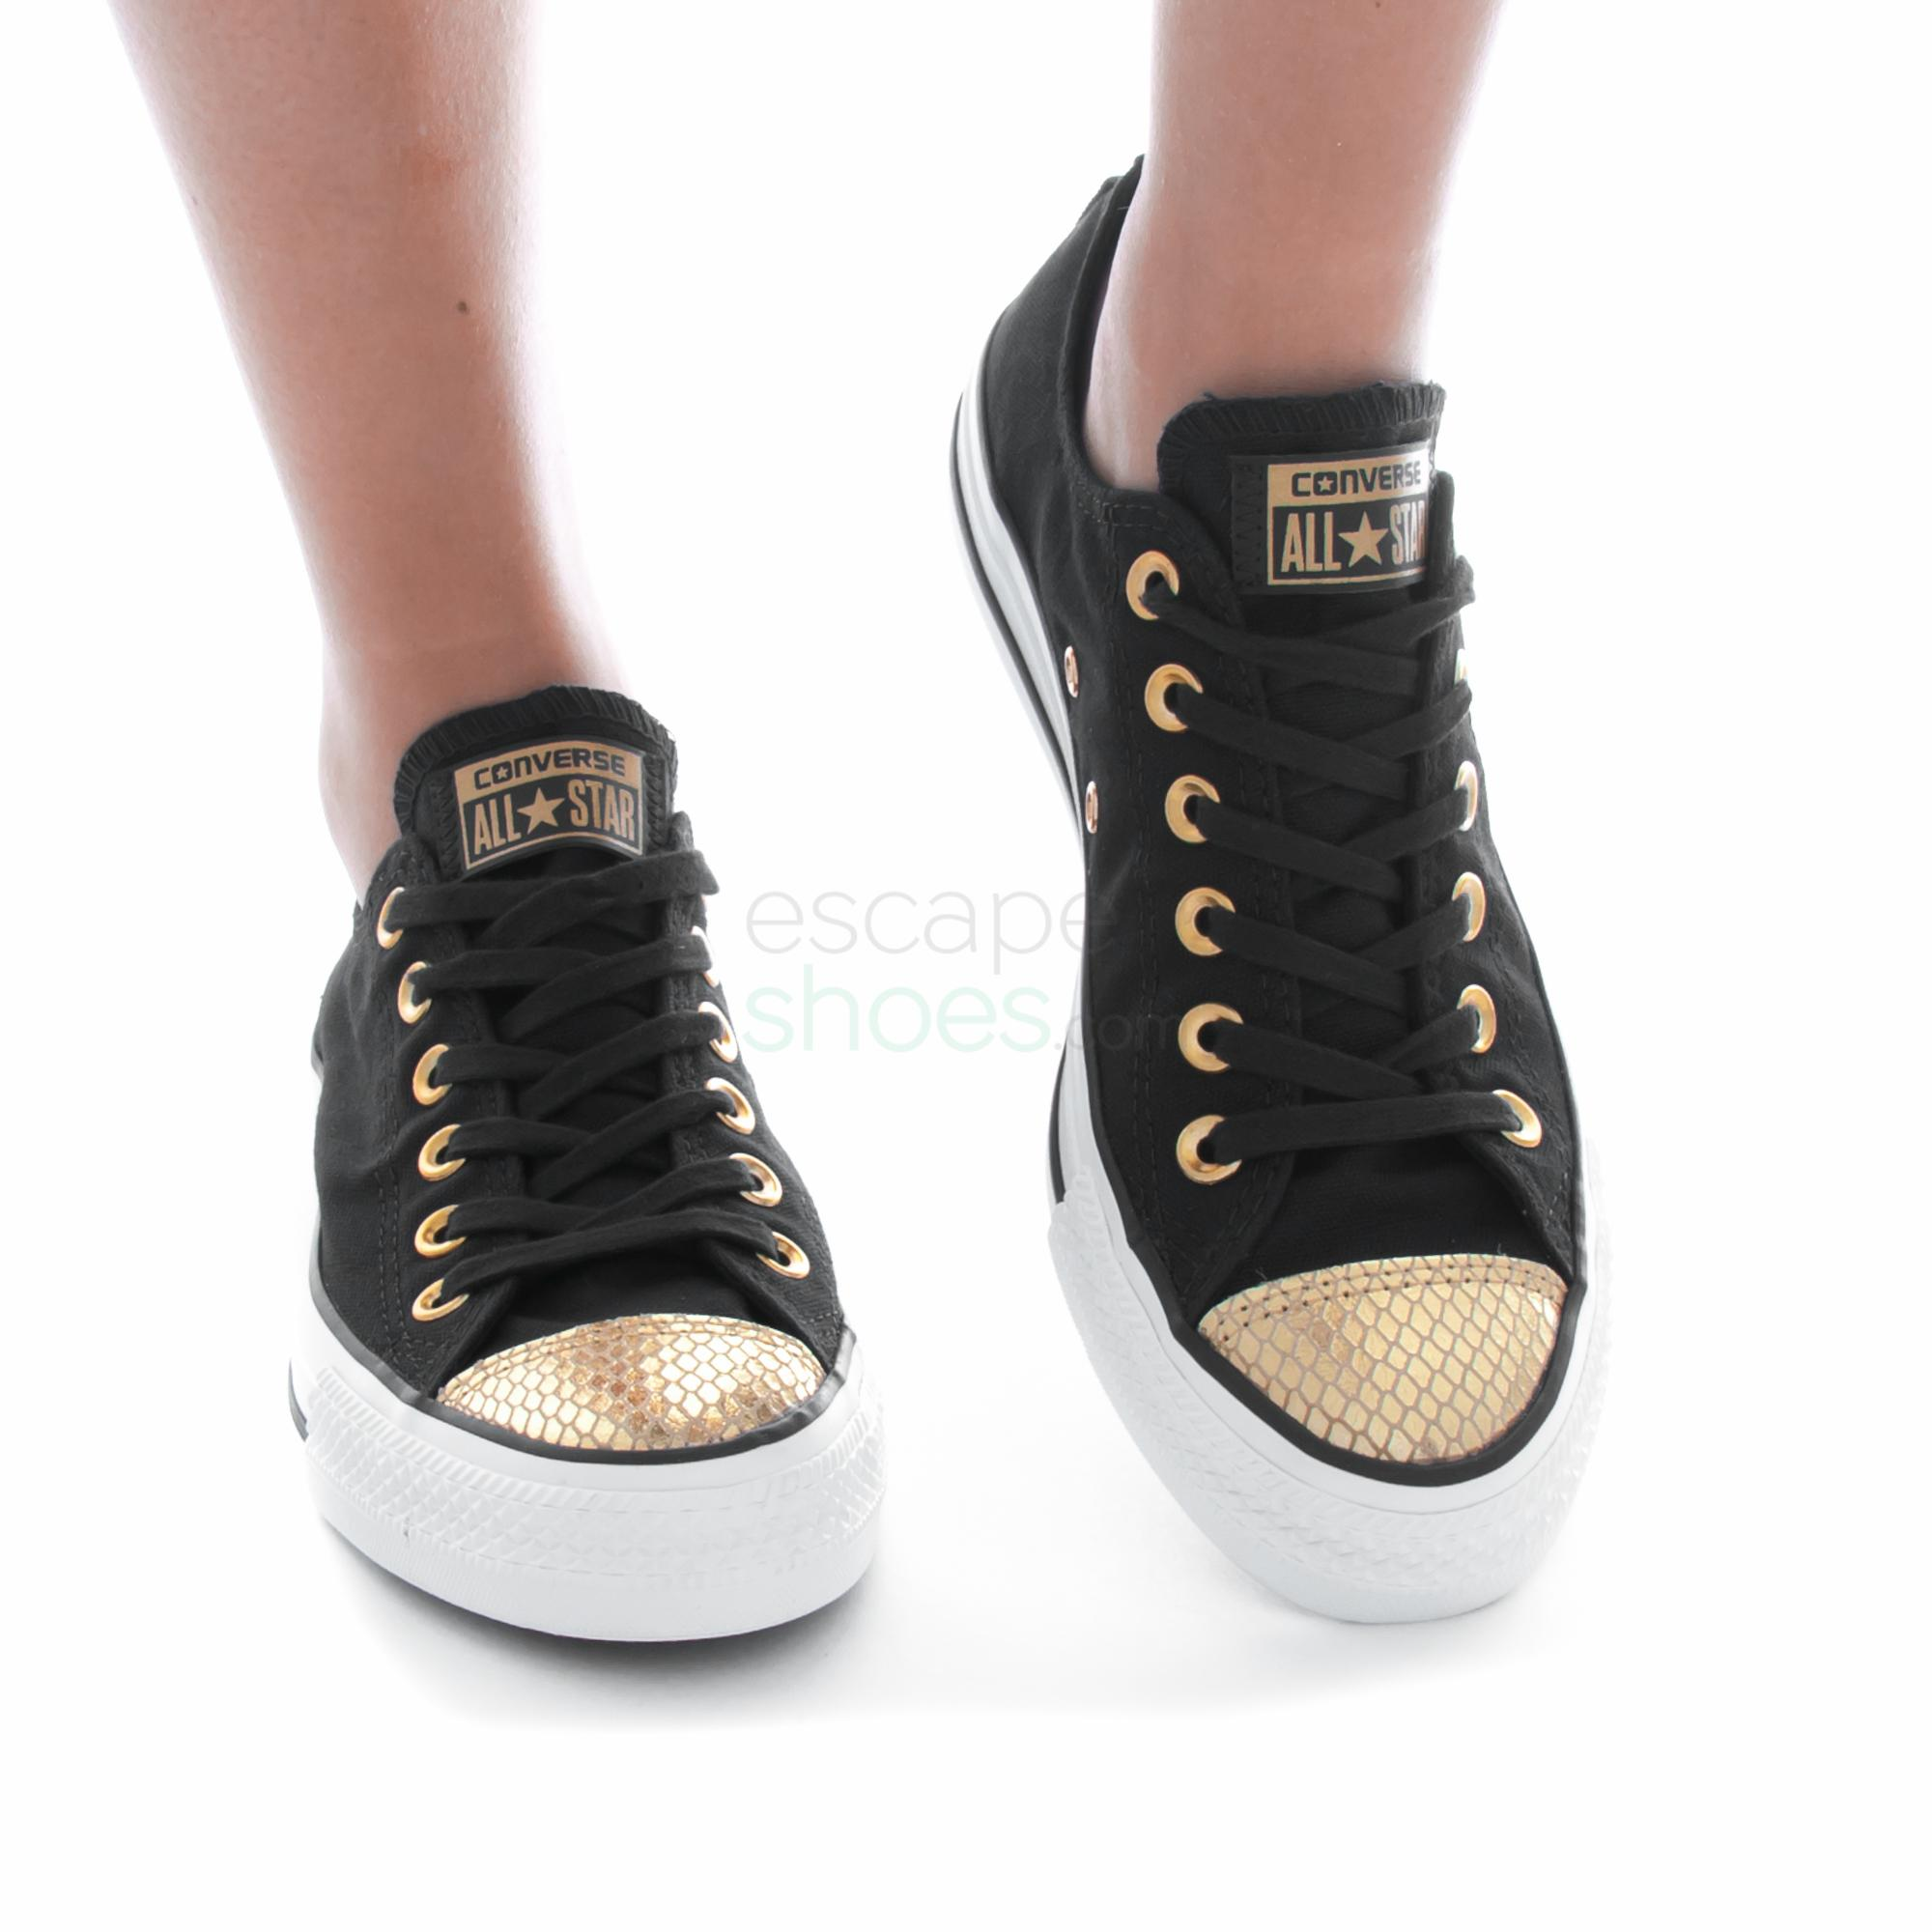 Details about CONVERSE Chuck Taylor All Star Metallic Toecap 555815C Sneakers Shoes Womens New